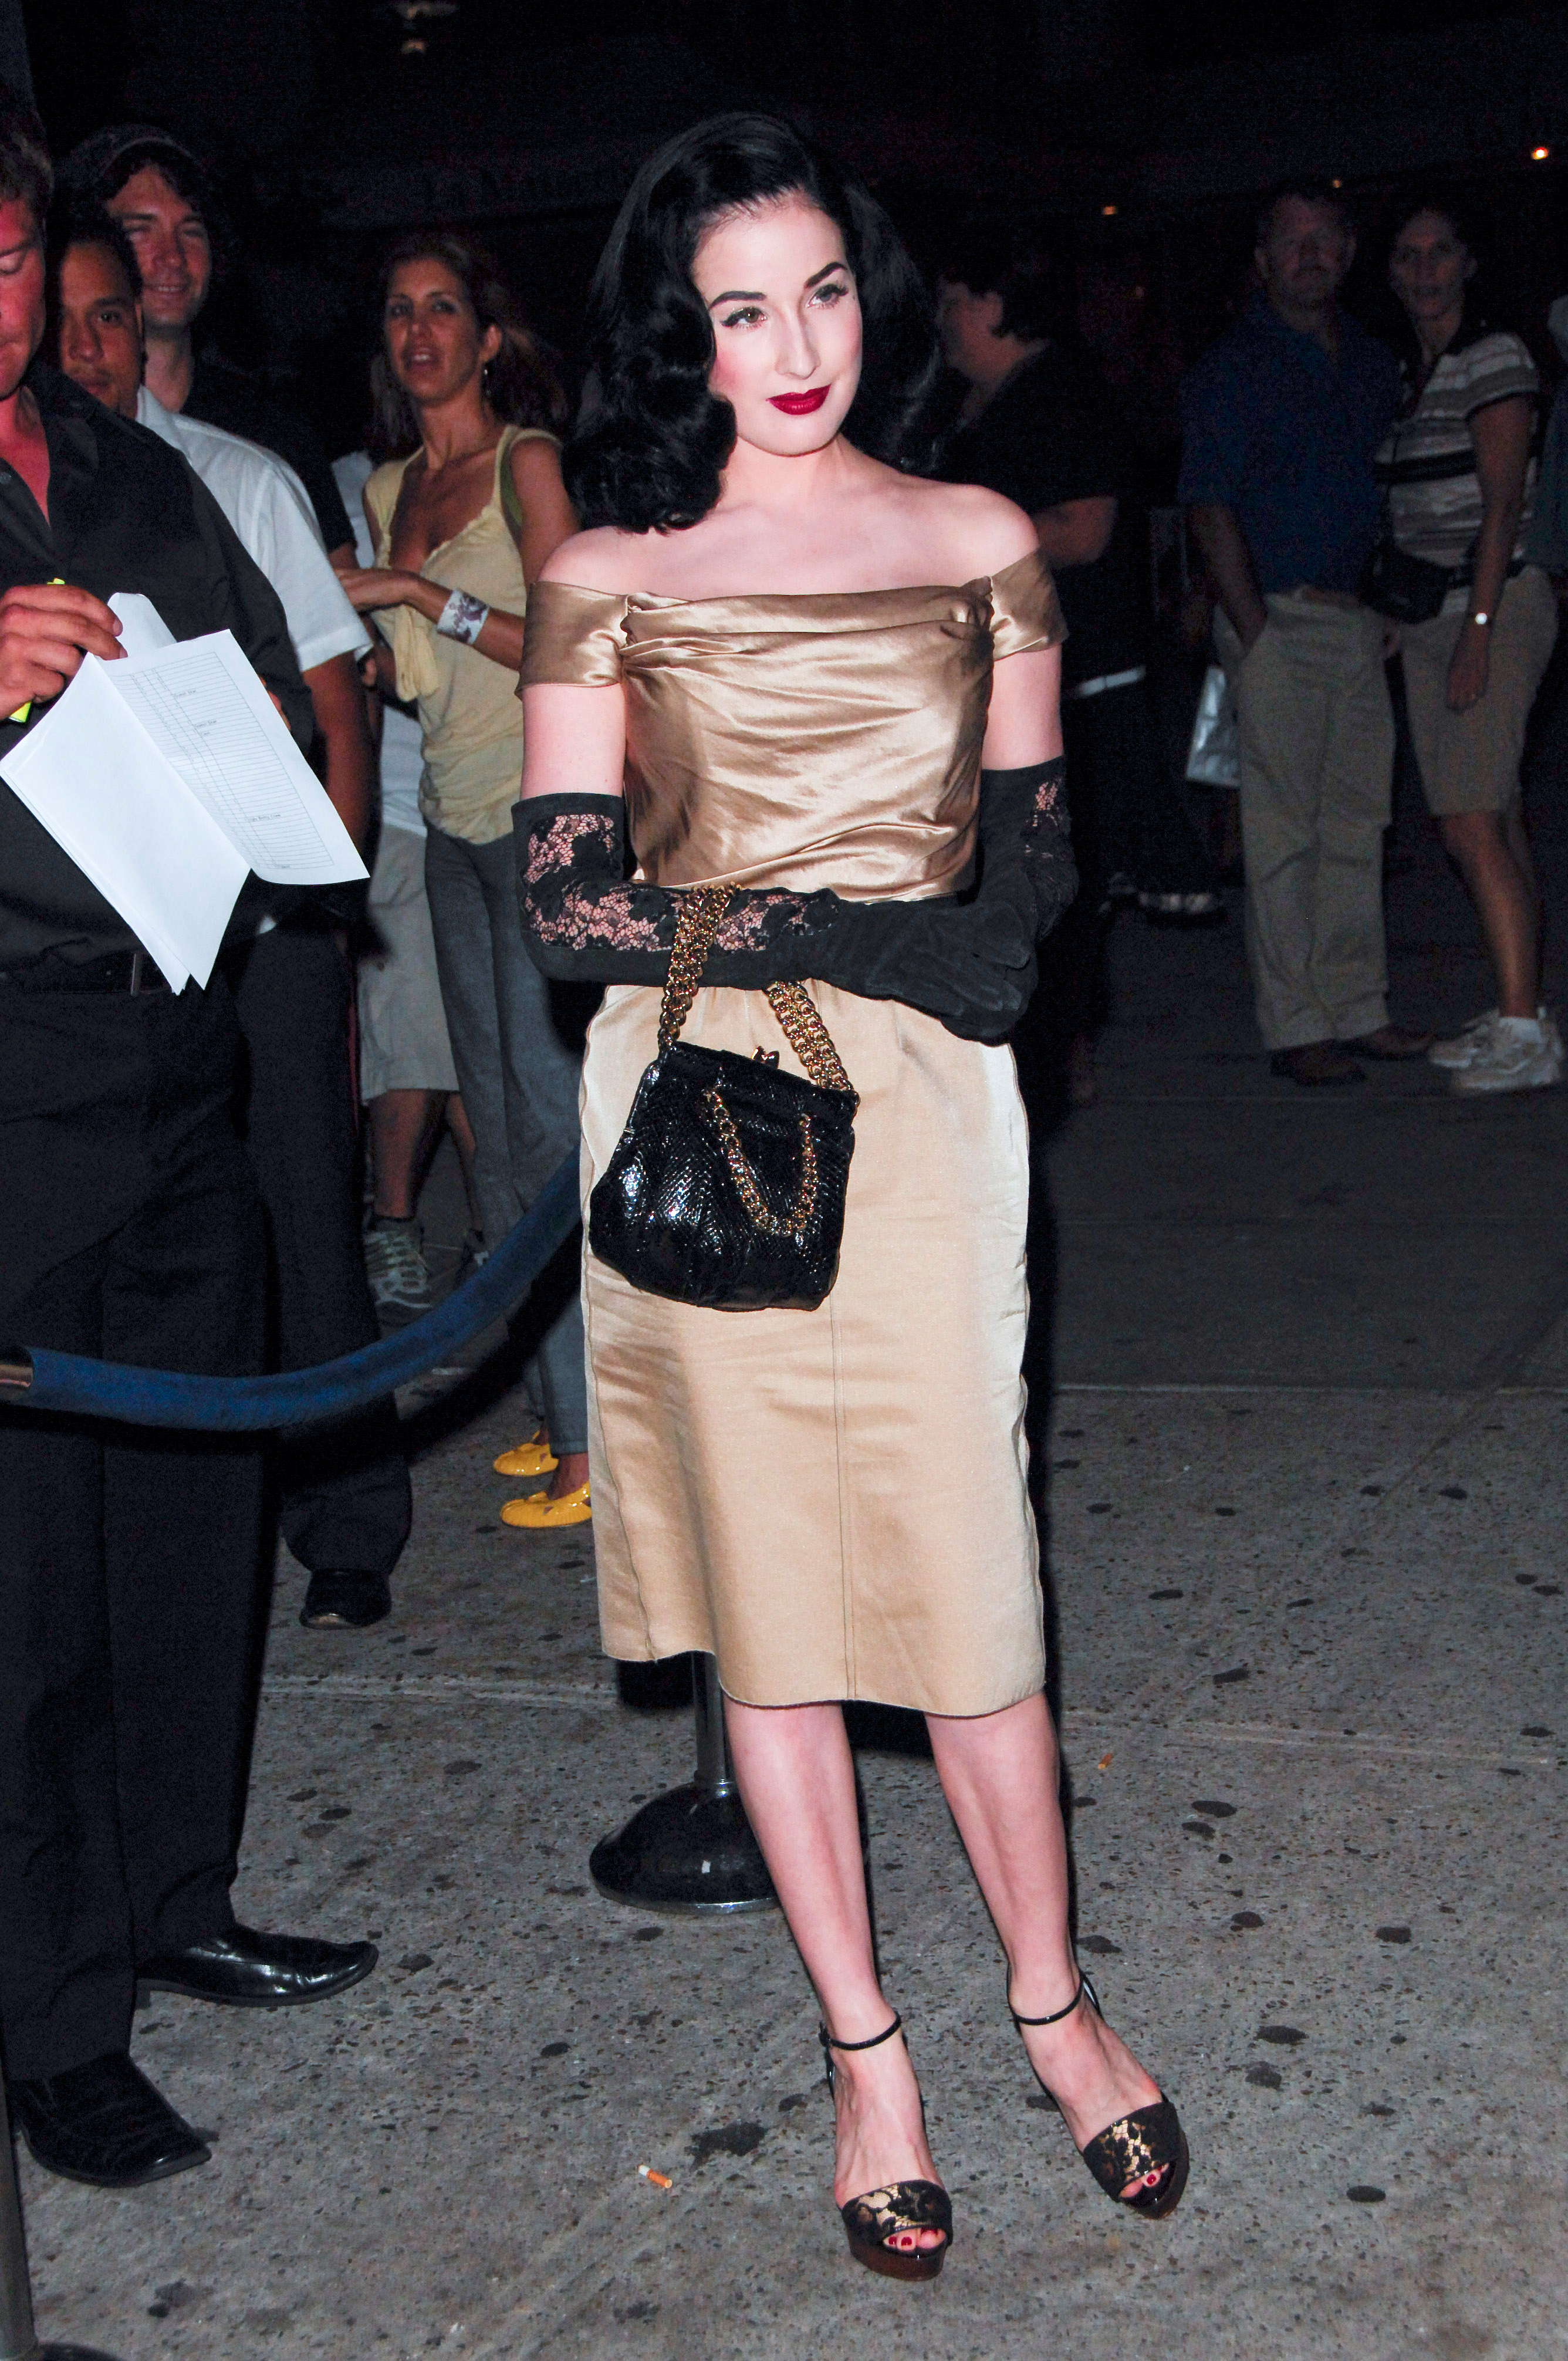 63707_Celebutopia-Dita_Von_Teese_attends_the_Ugly_Betty_Premiere_Party_in_New_York_City-02_122_1132lo.jpg